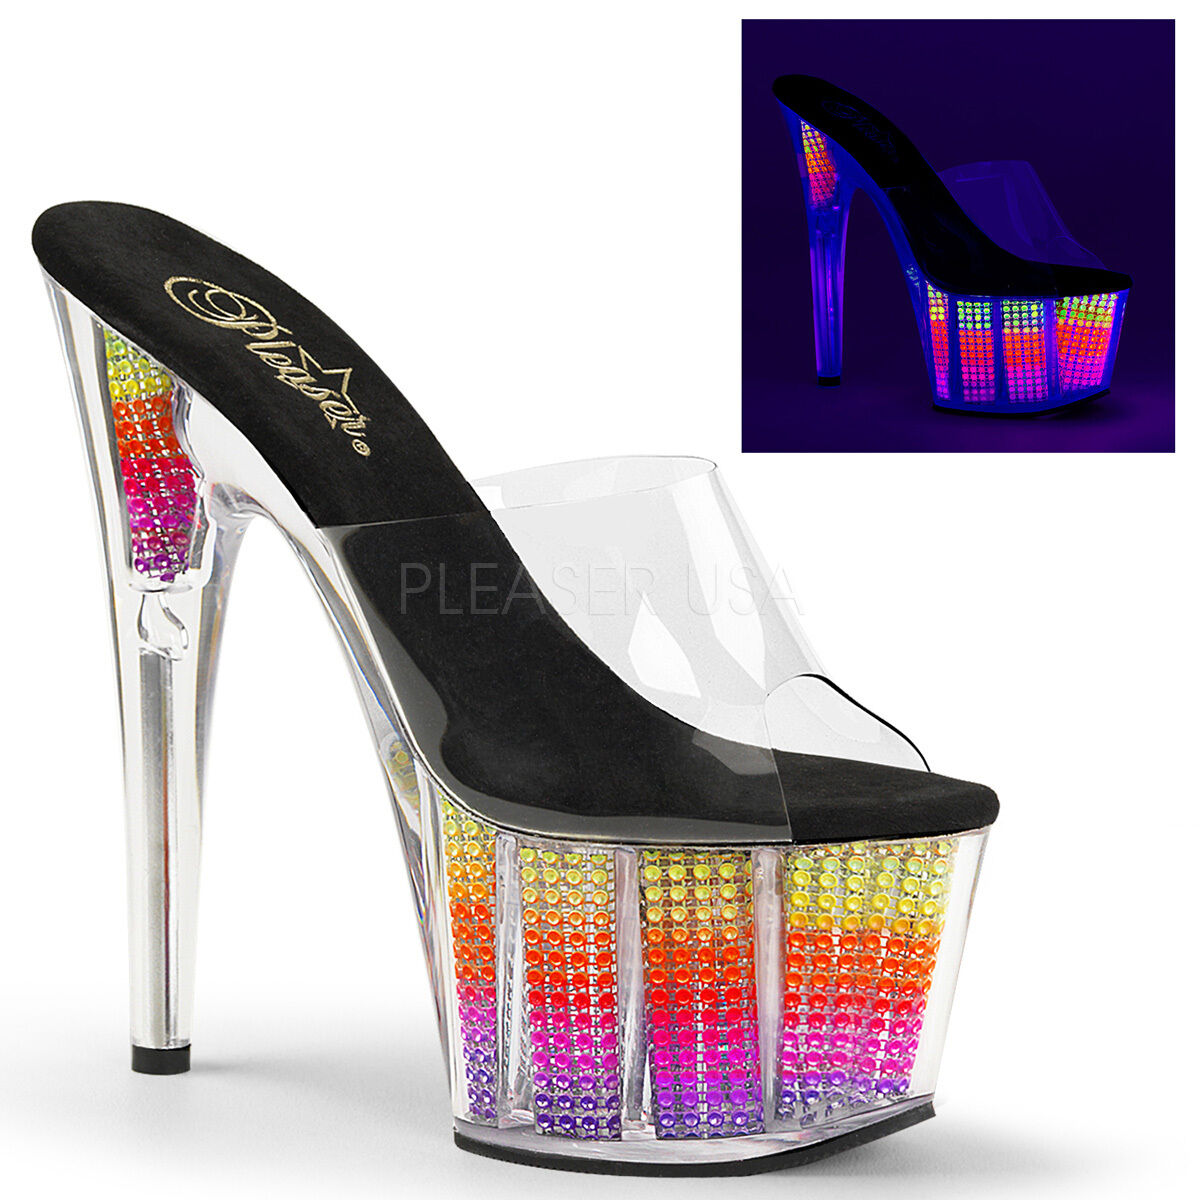 Pleaser Adore-701SRS Slip On shoes Mules Platform High Heels UV UV UV Pole Dancing New 1d6a95